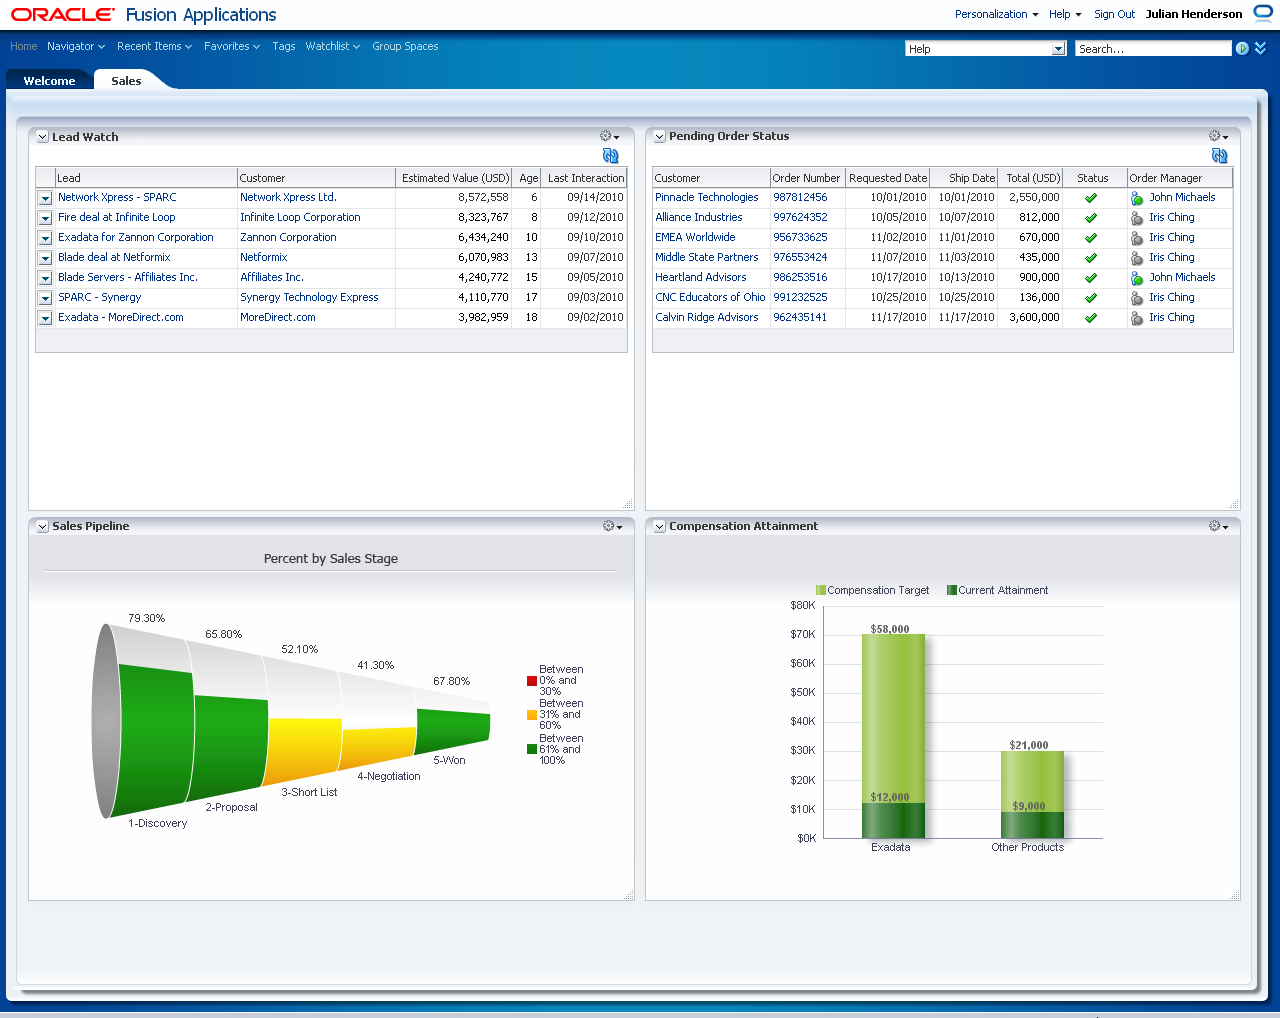 Oracle Fusion CRM for sales rep